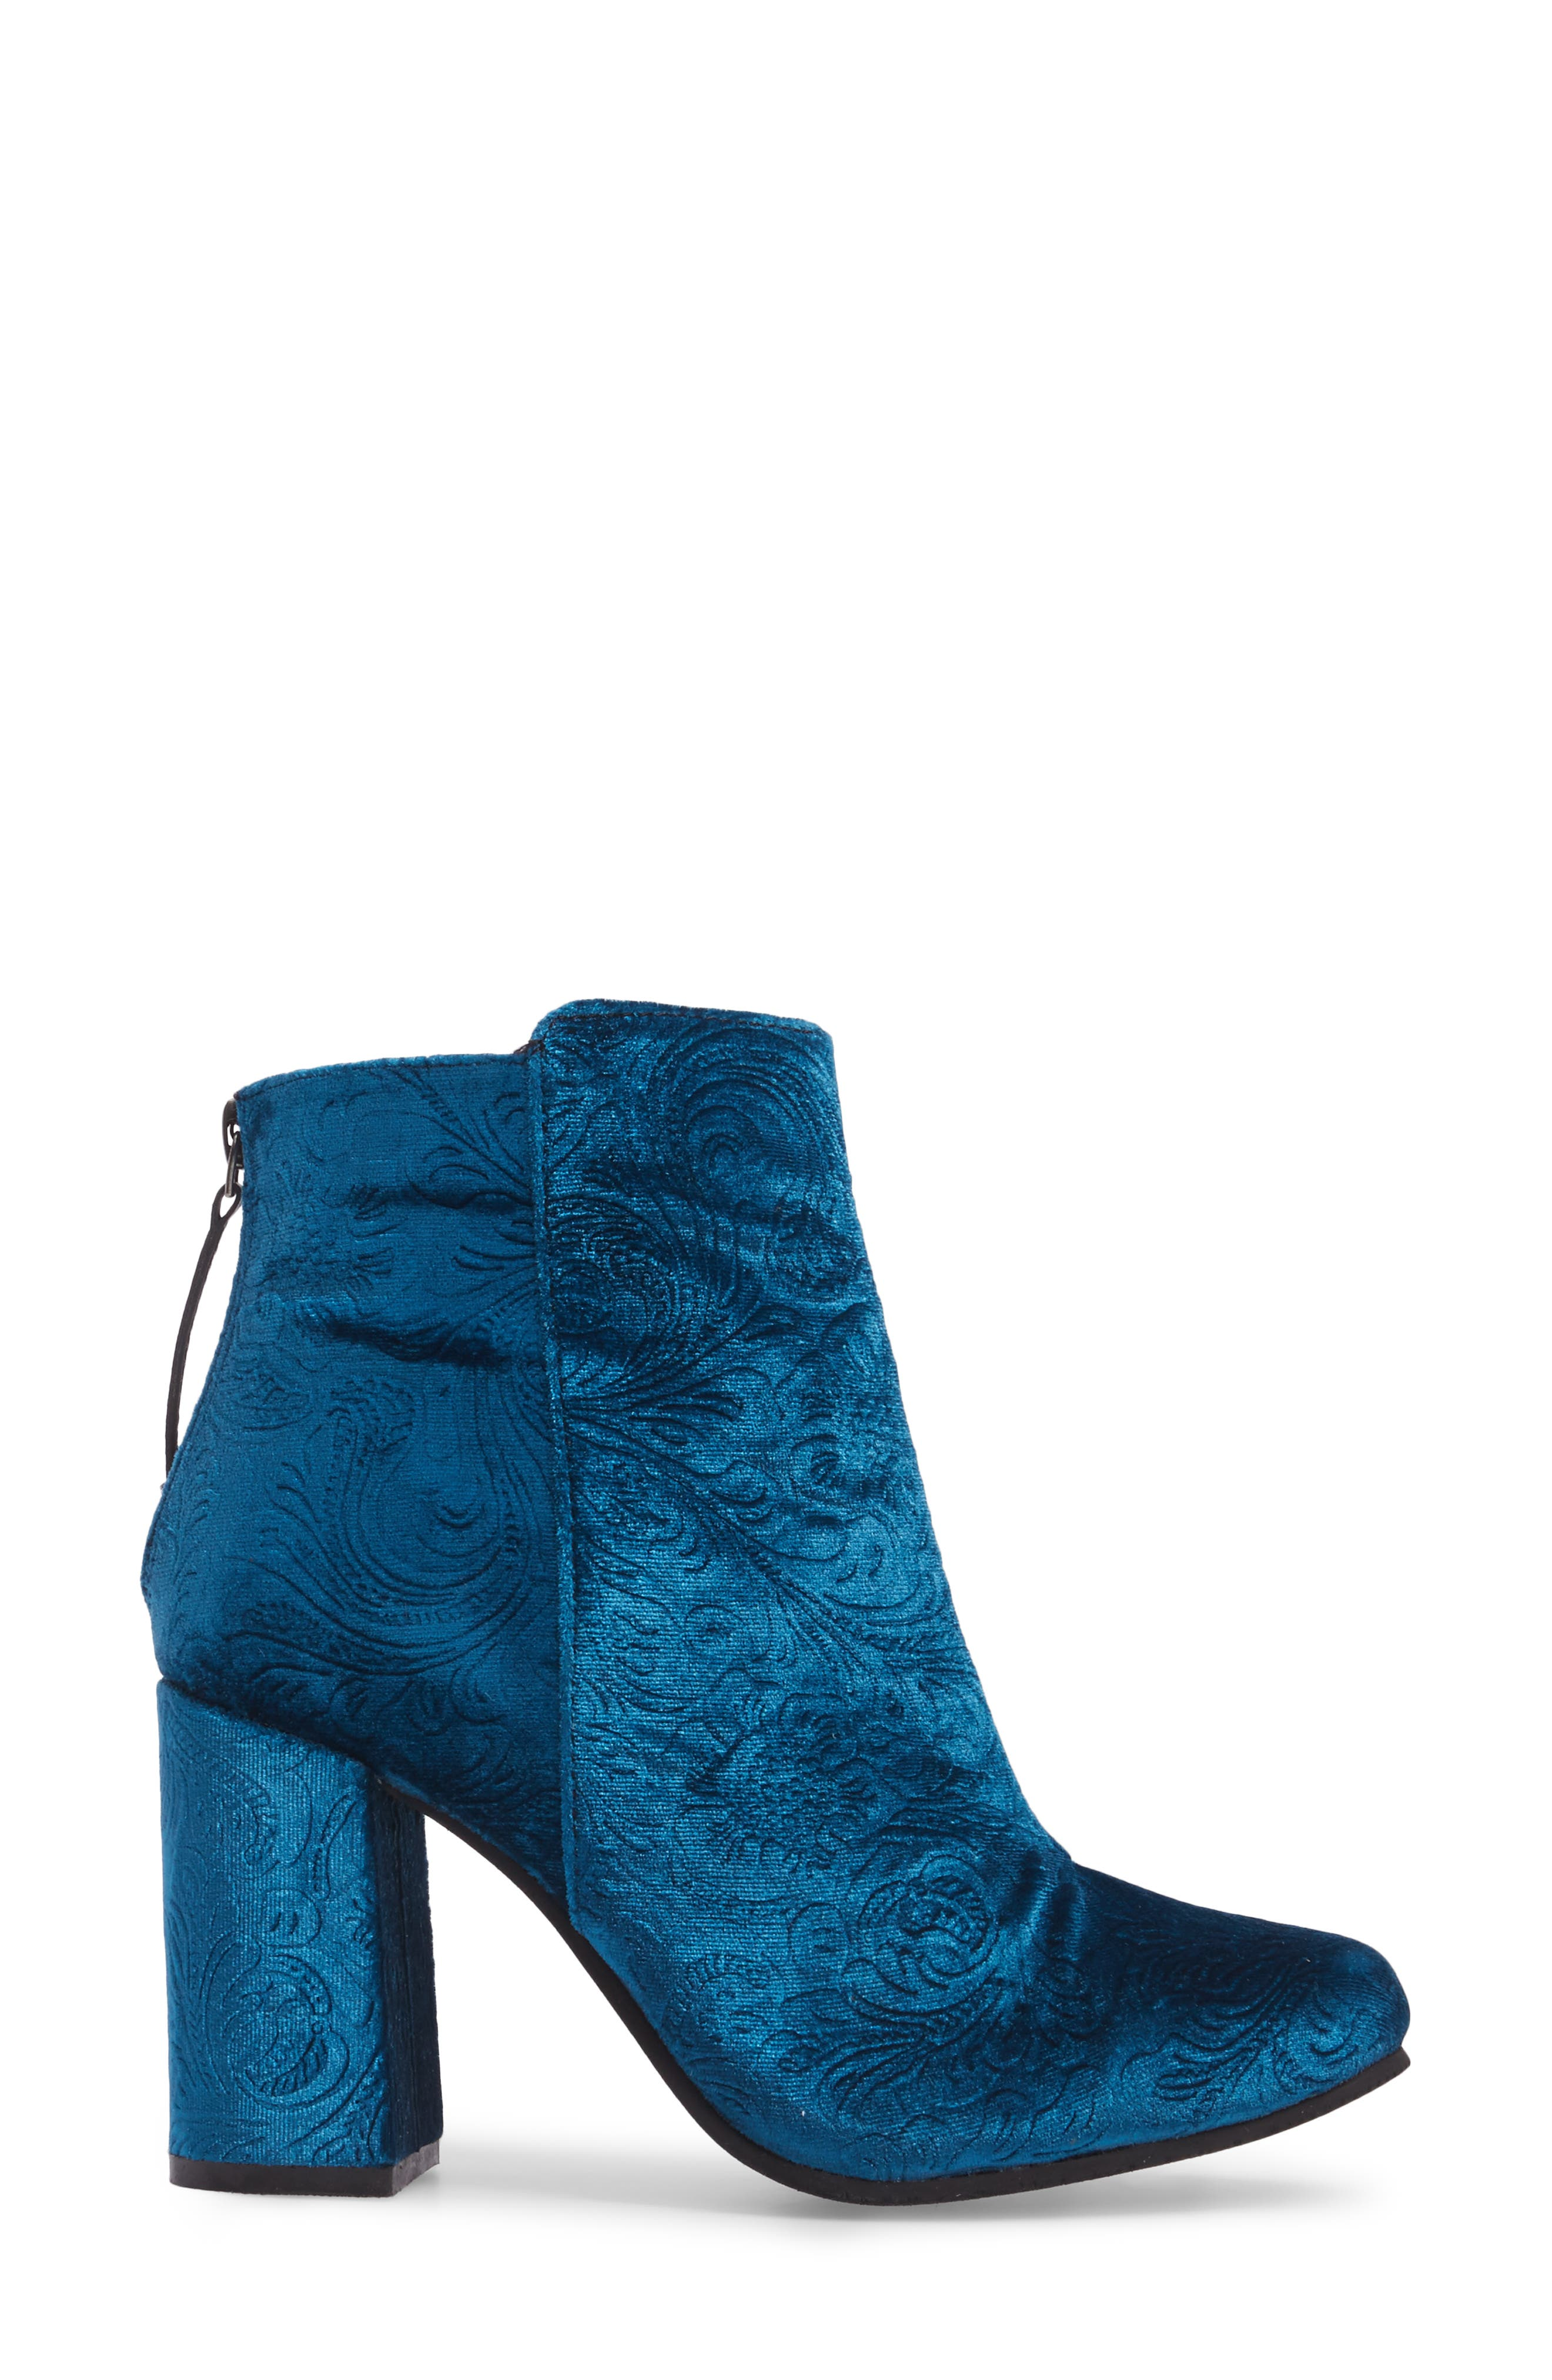 Nadonna Bootie,                             Alternate thumbnail 3, color,                             Teal Fabric